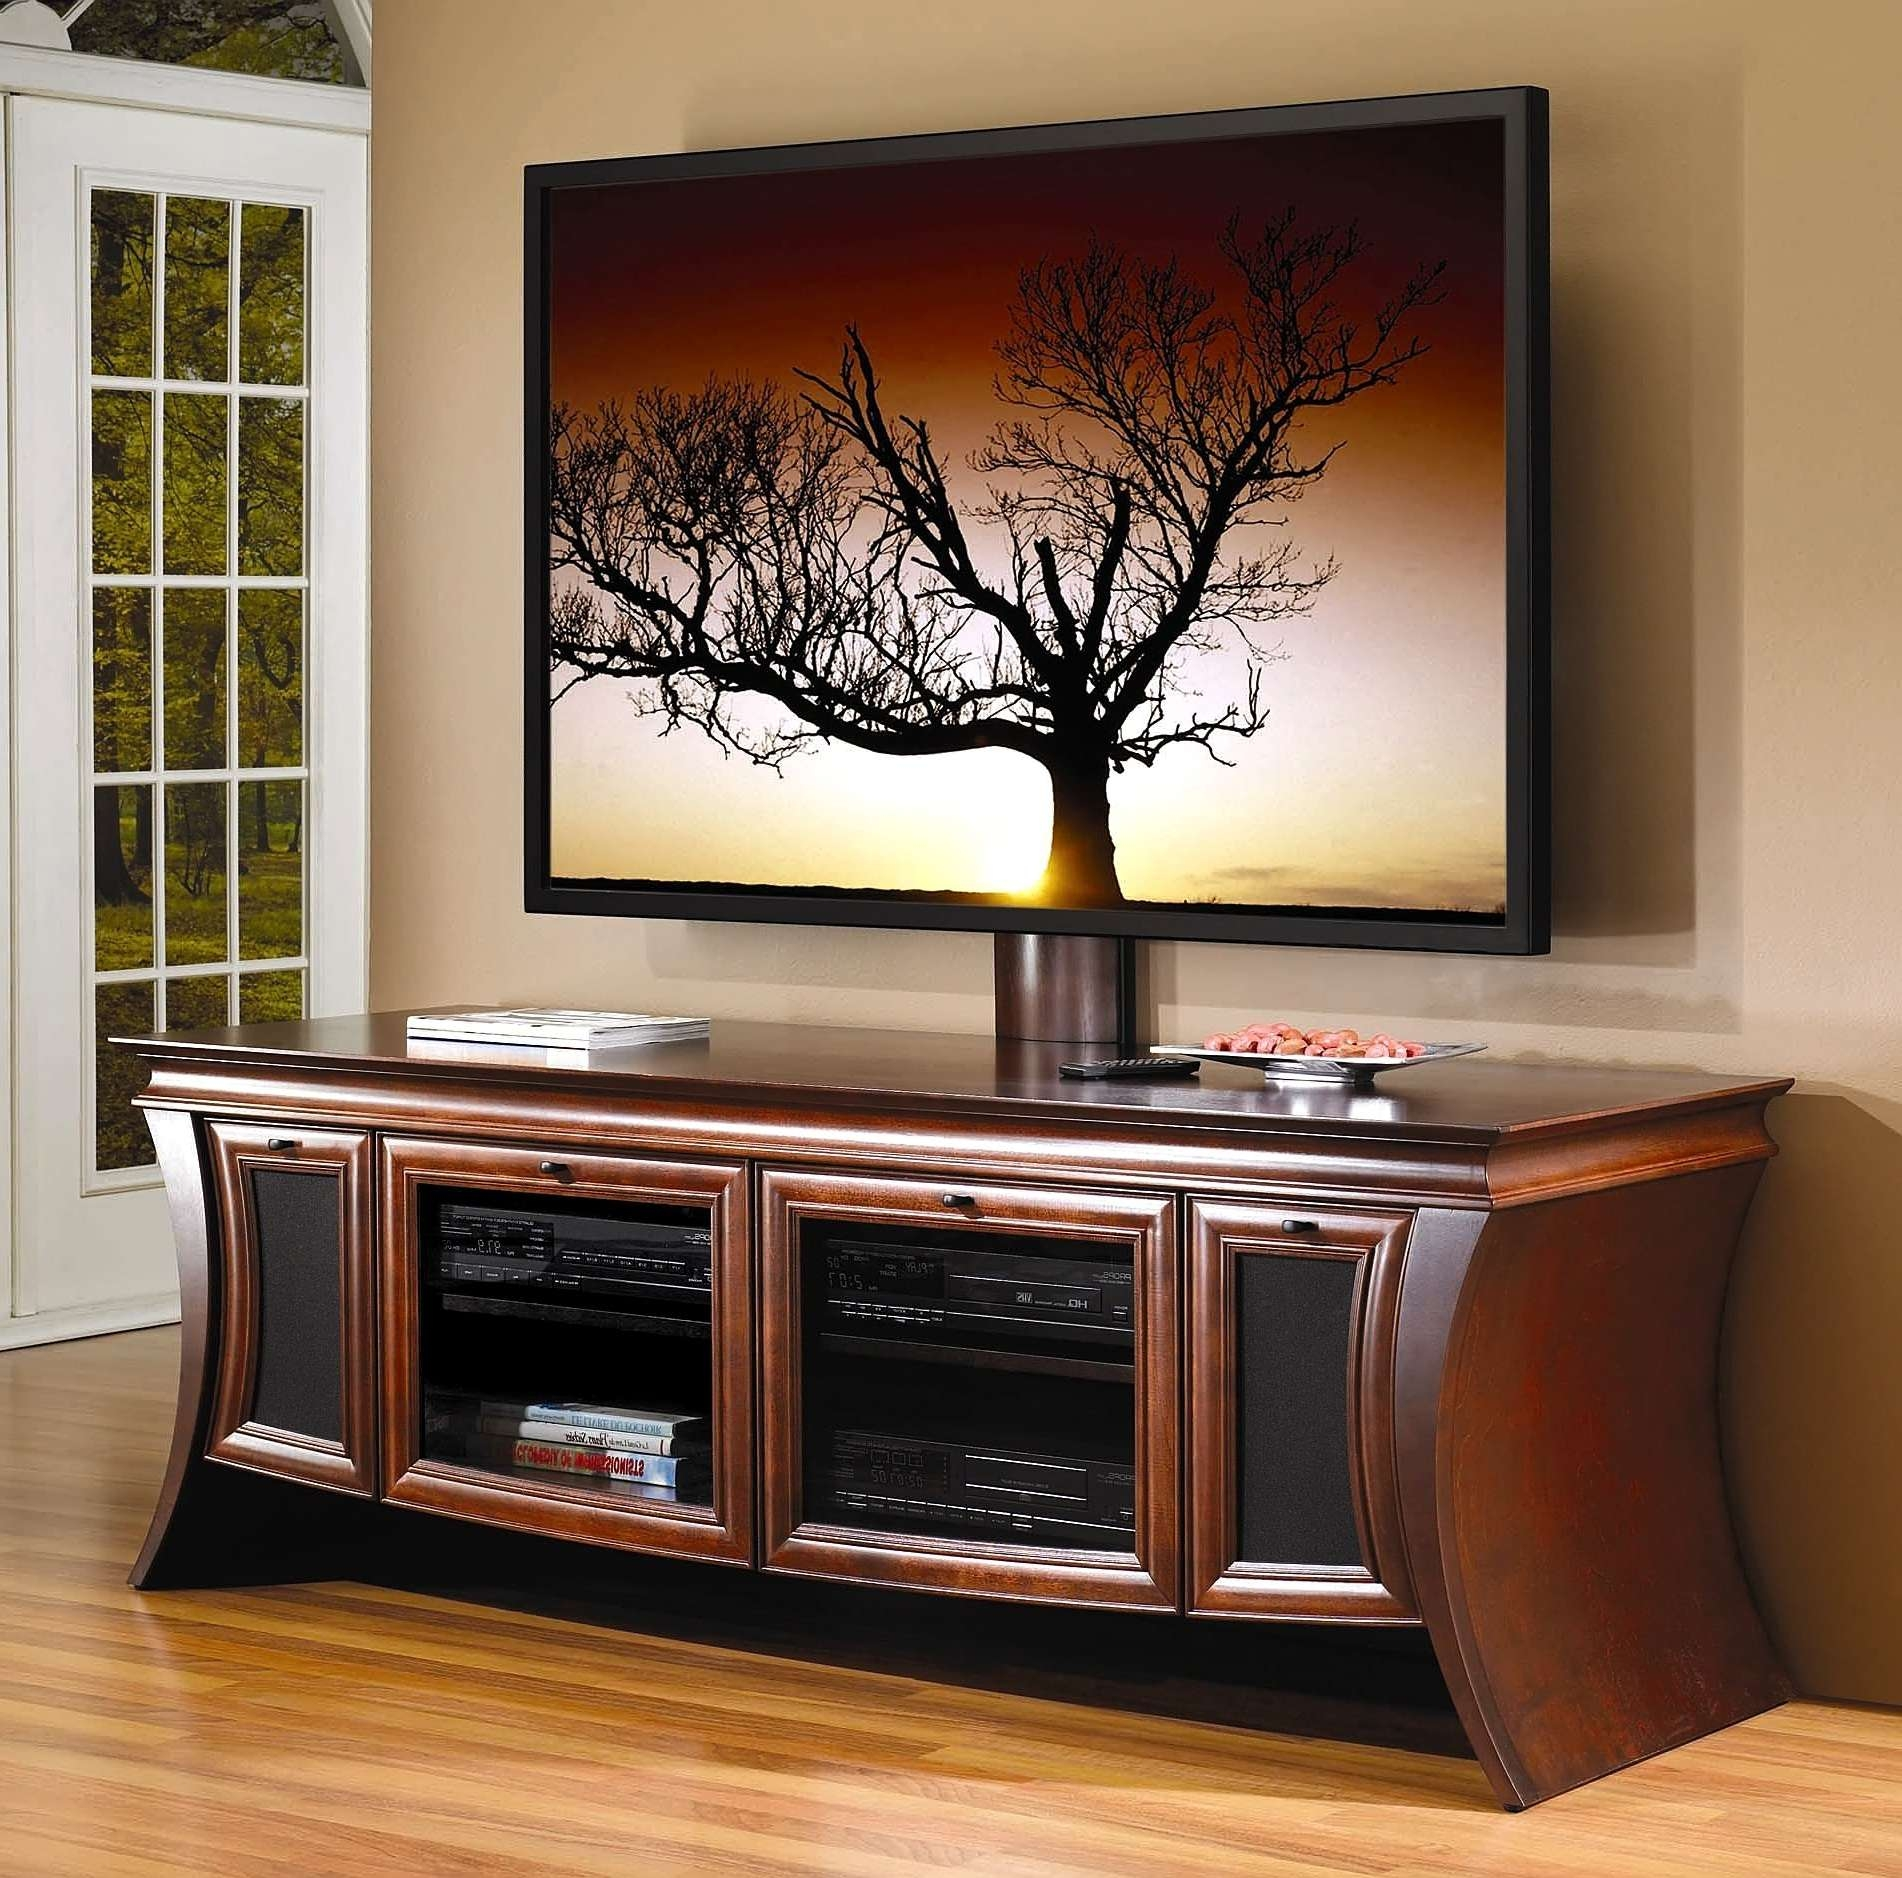 Wood Flat Screen Curved Tv Stands Photo Of Entertainment Center Within Wooden Tv Stands For 50 Inch Tv (View 15 of 15)